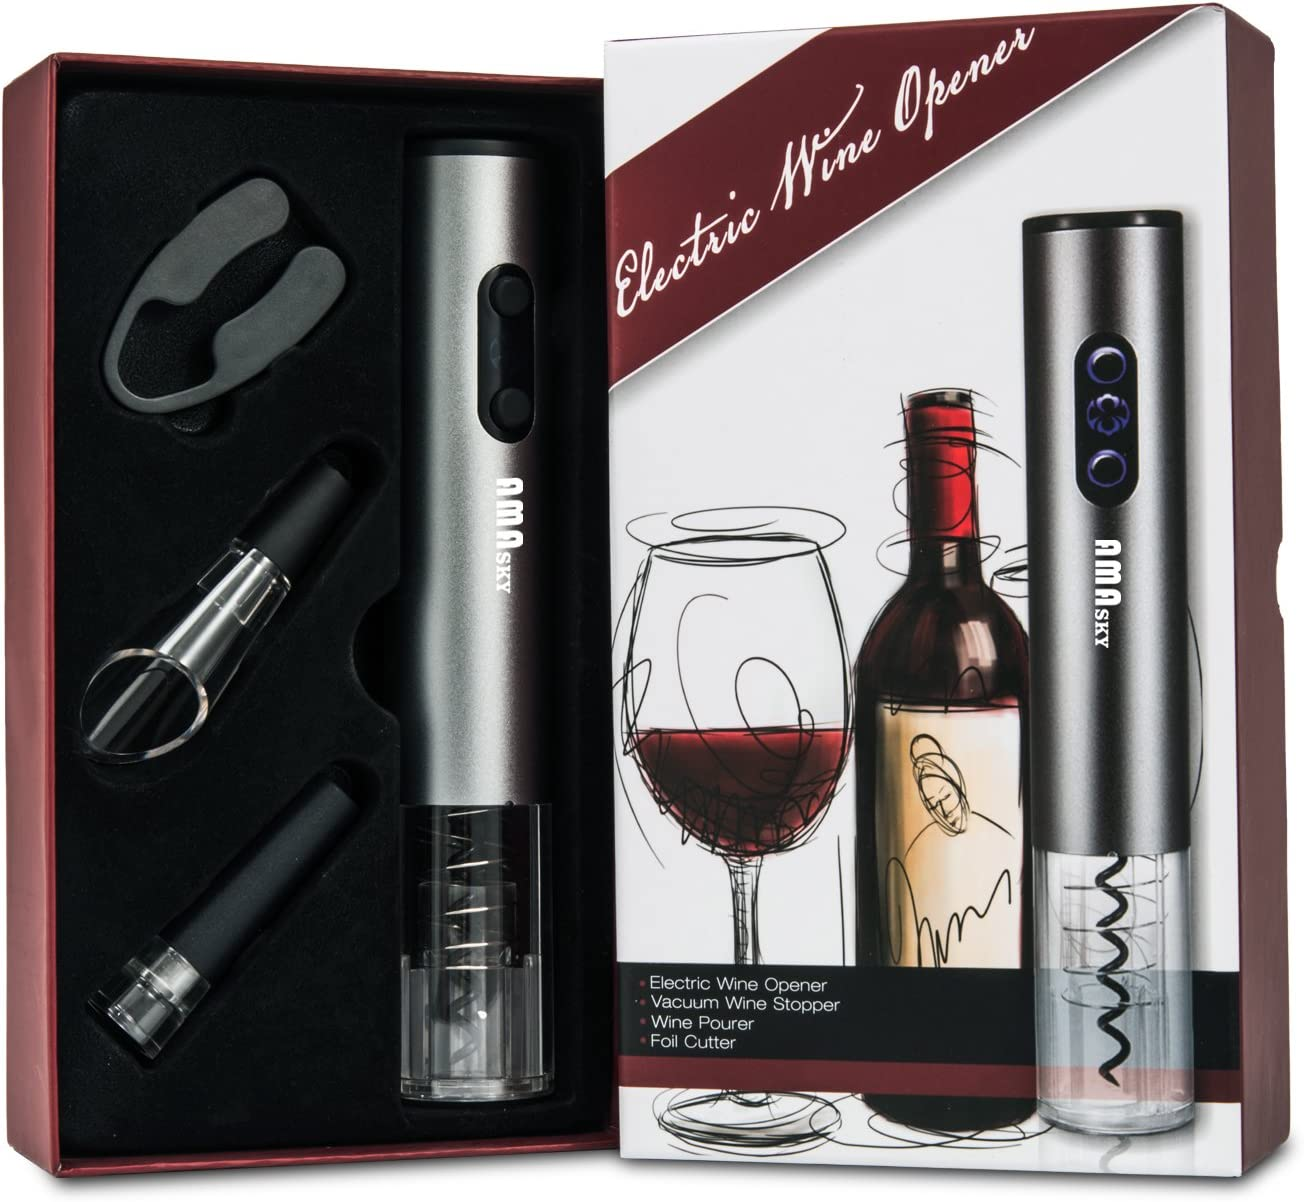 AMASKY Electric Wine Opener Set, Automatic Stainless Steel Wine Opener, Foil Cutter, Vacuum stopper, Aerator Wine Pourer